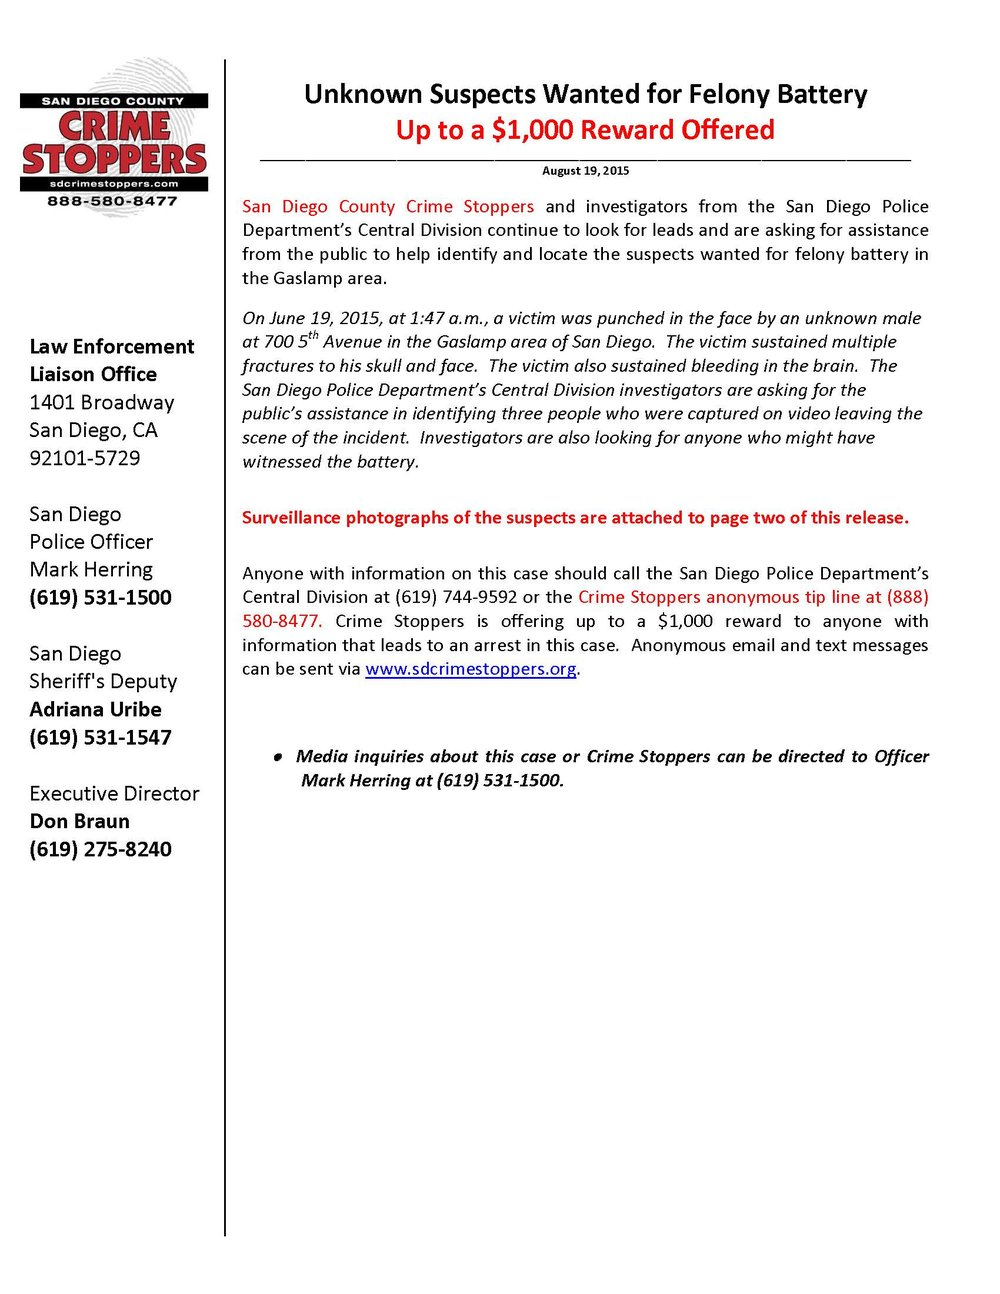 081915 Gaslamp Area Felony Battery Case_Page_1